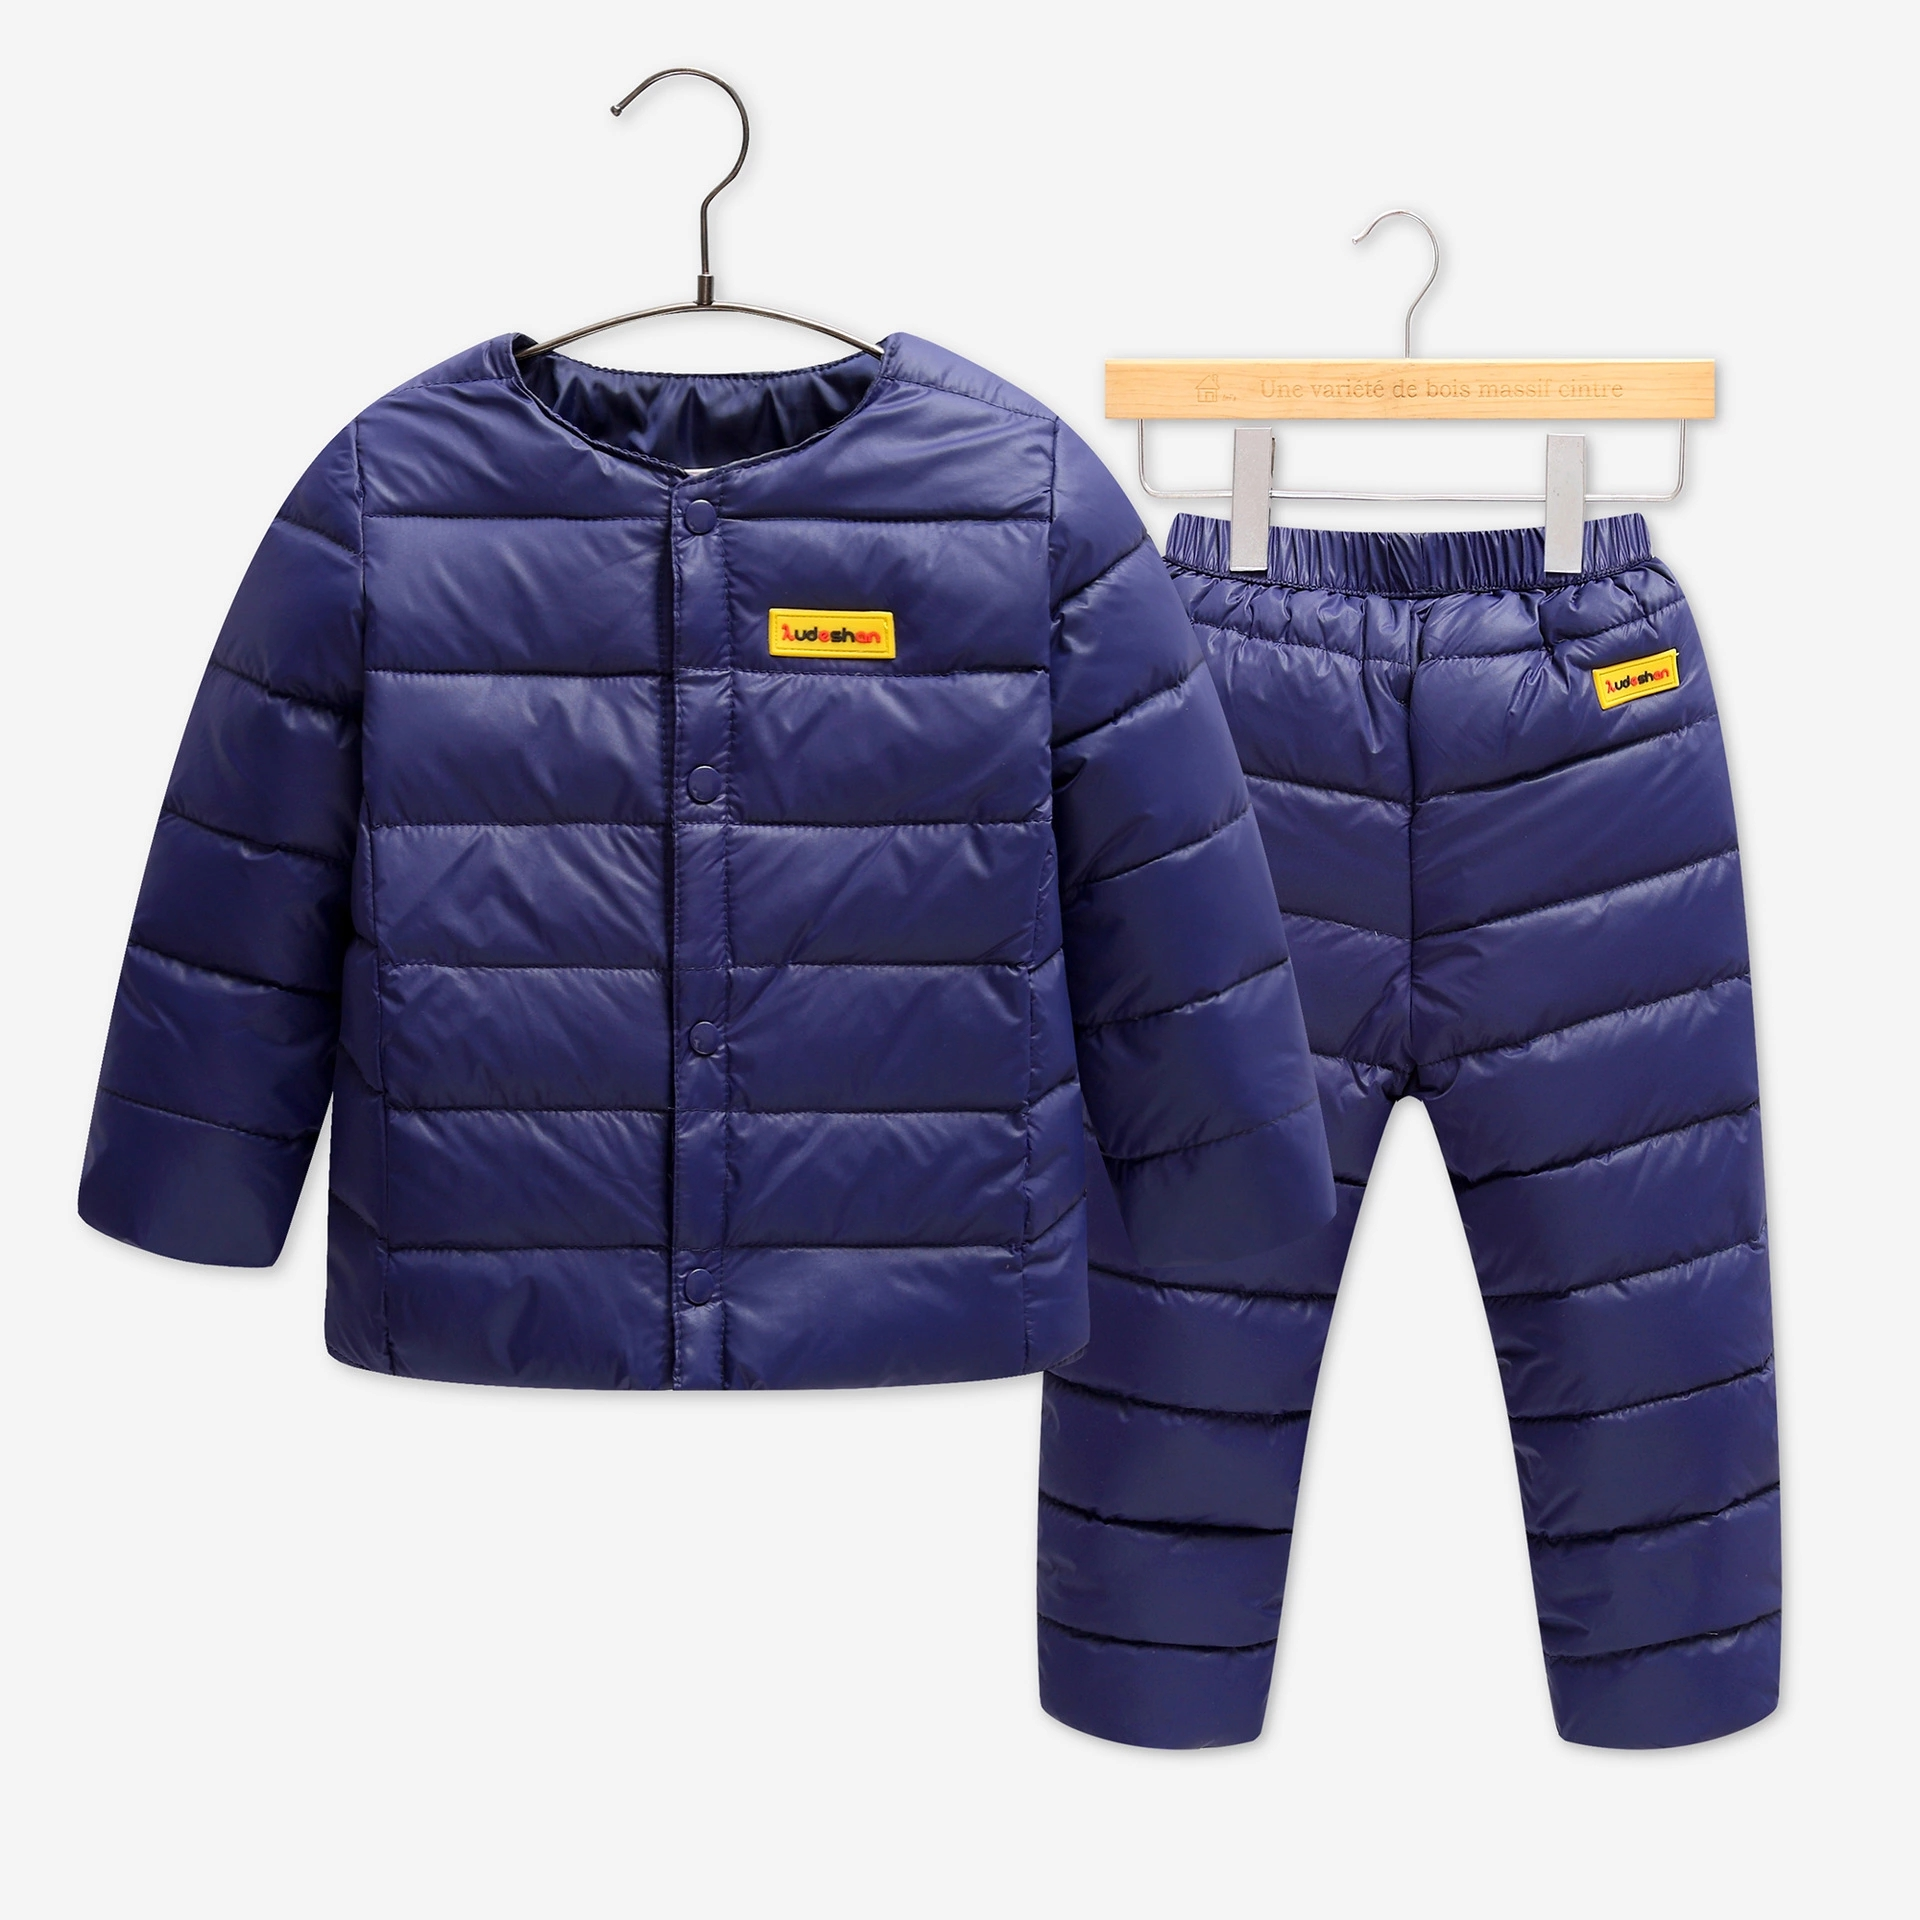 1-6 years Children Set Boys Girls Clothing Sets Winter Coat Down Jacket+Trousers Waterproof Snow Warm kids Clothes suit teenage girls clothes sets camouflage kids suit fashion costume boys clothing set tracksuits for girl 6 12 years coat pants